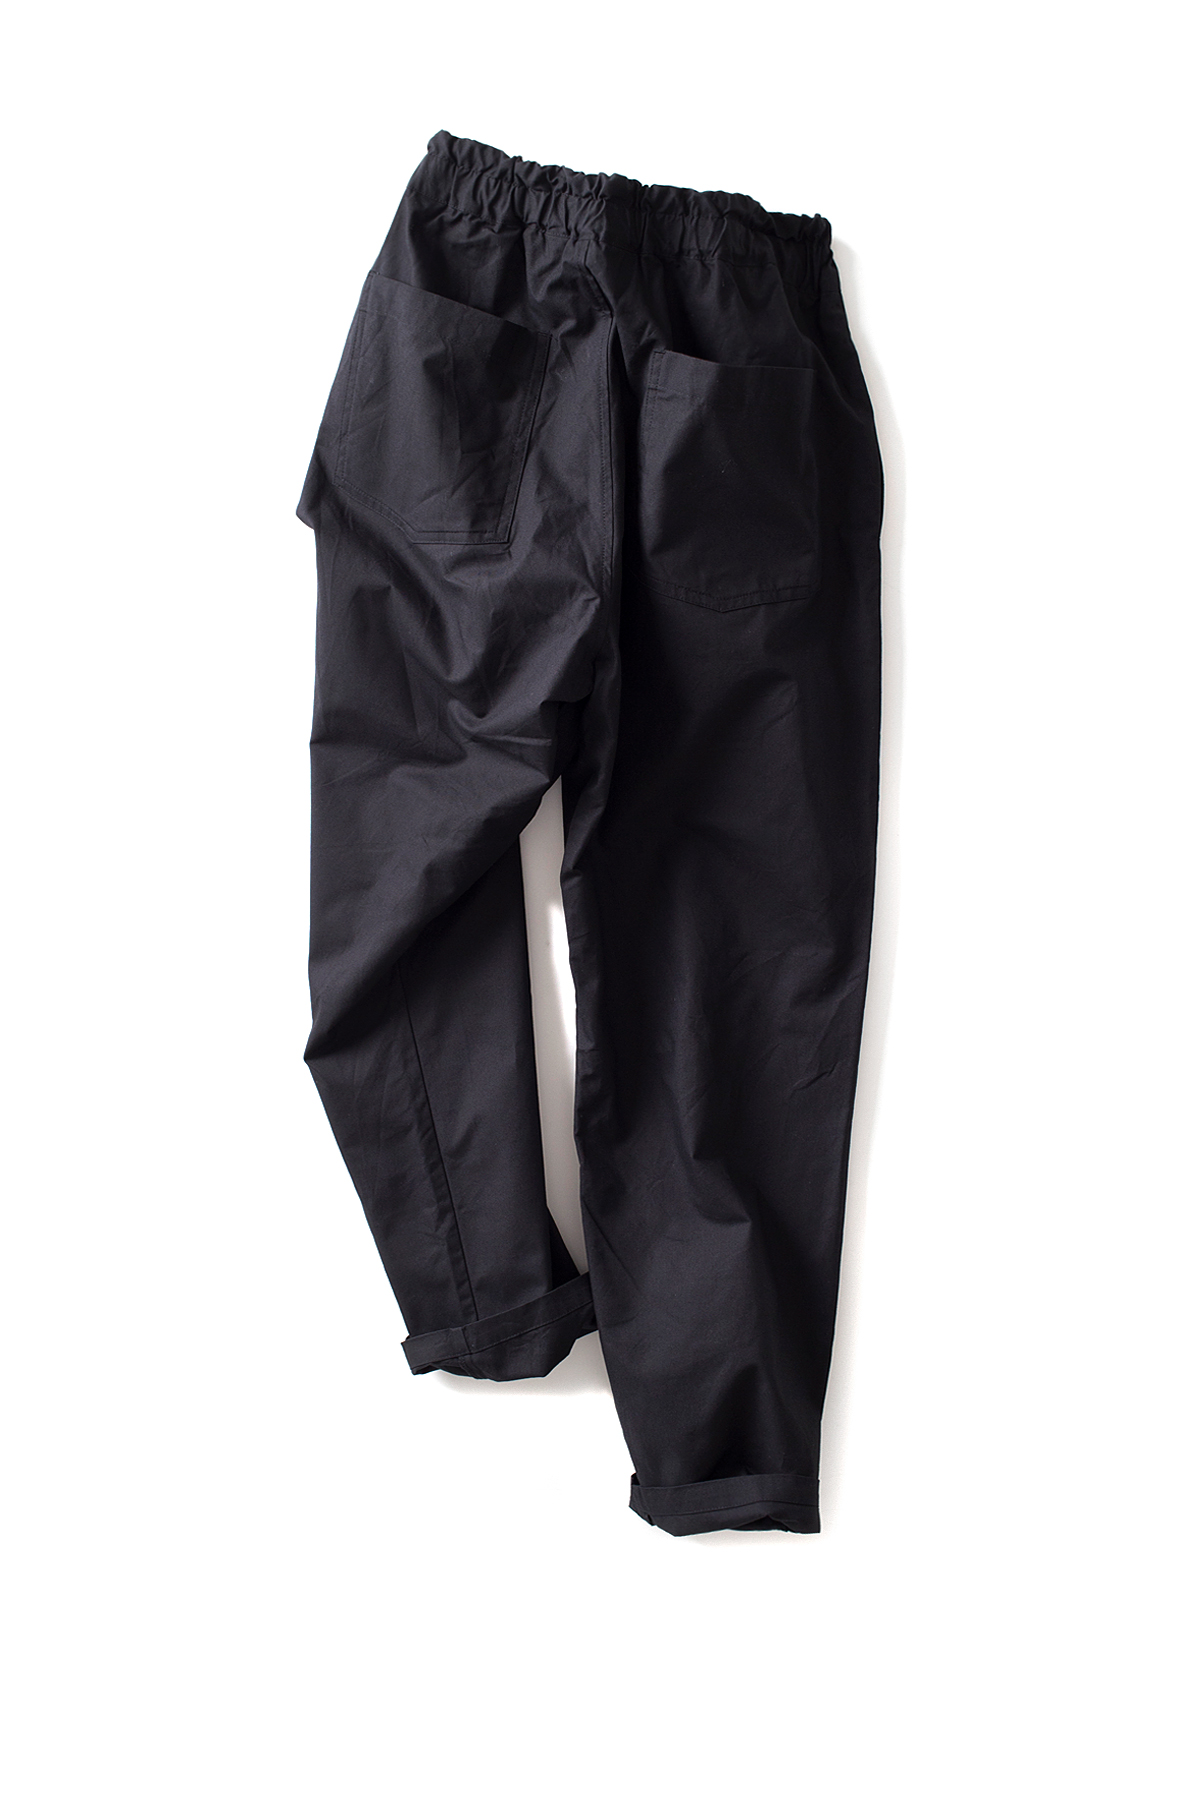 RINEN : Aligned Ox Easy Pants (Black)